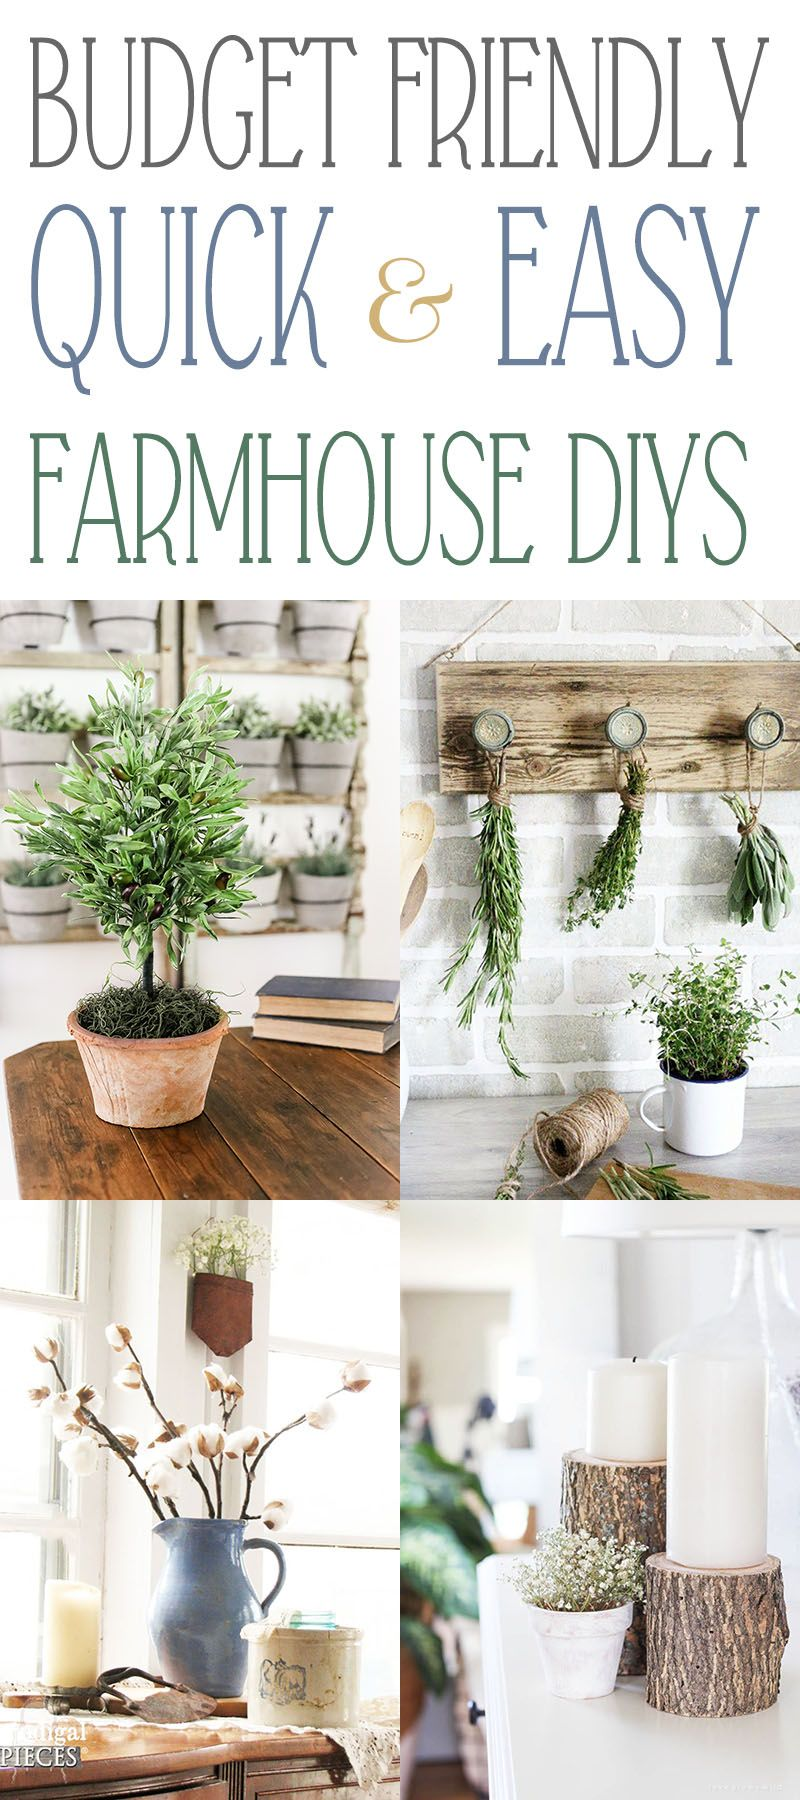 budget friendly quick and easy farmhouse diys diy on fast and easy ways to refresh your home on a budget id=43980